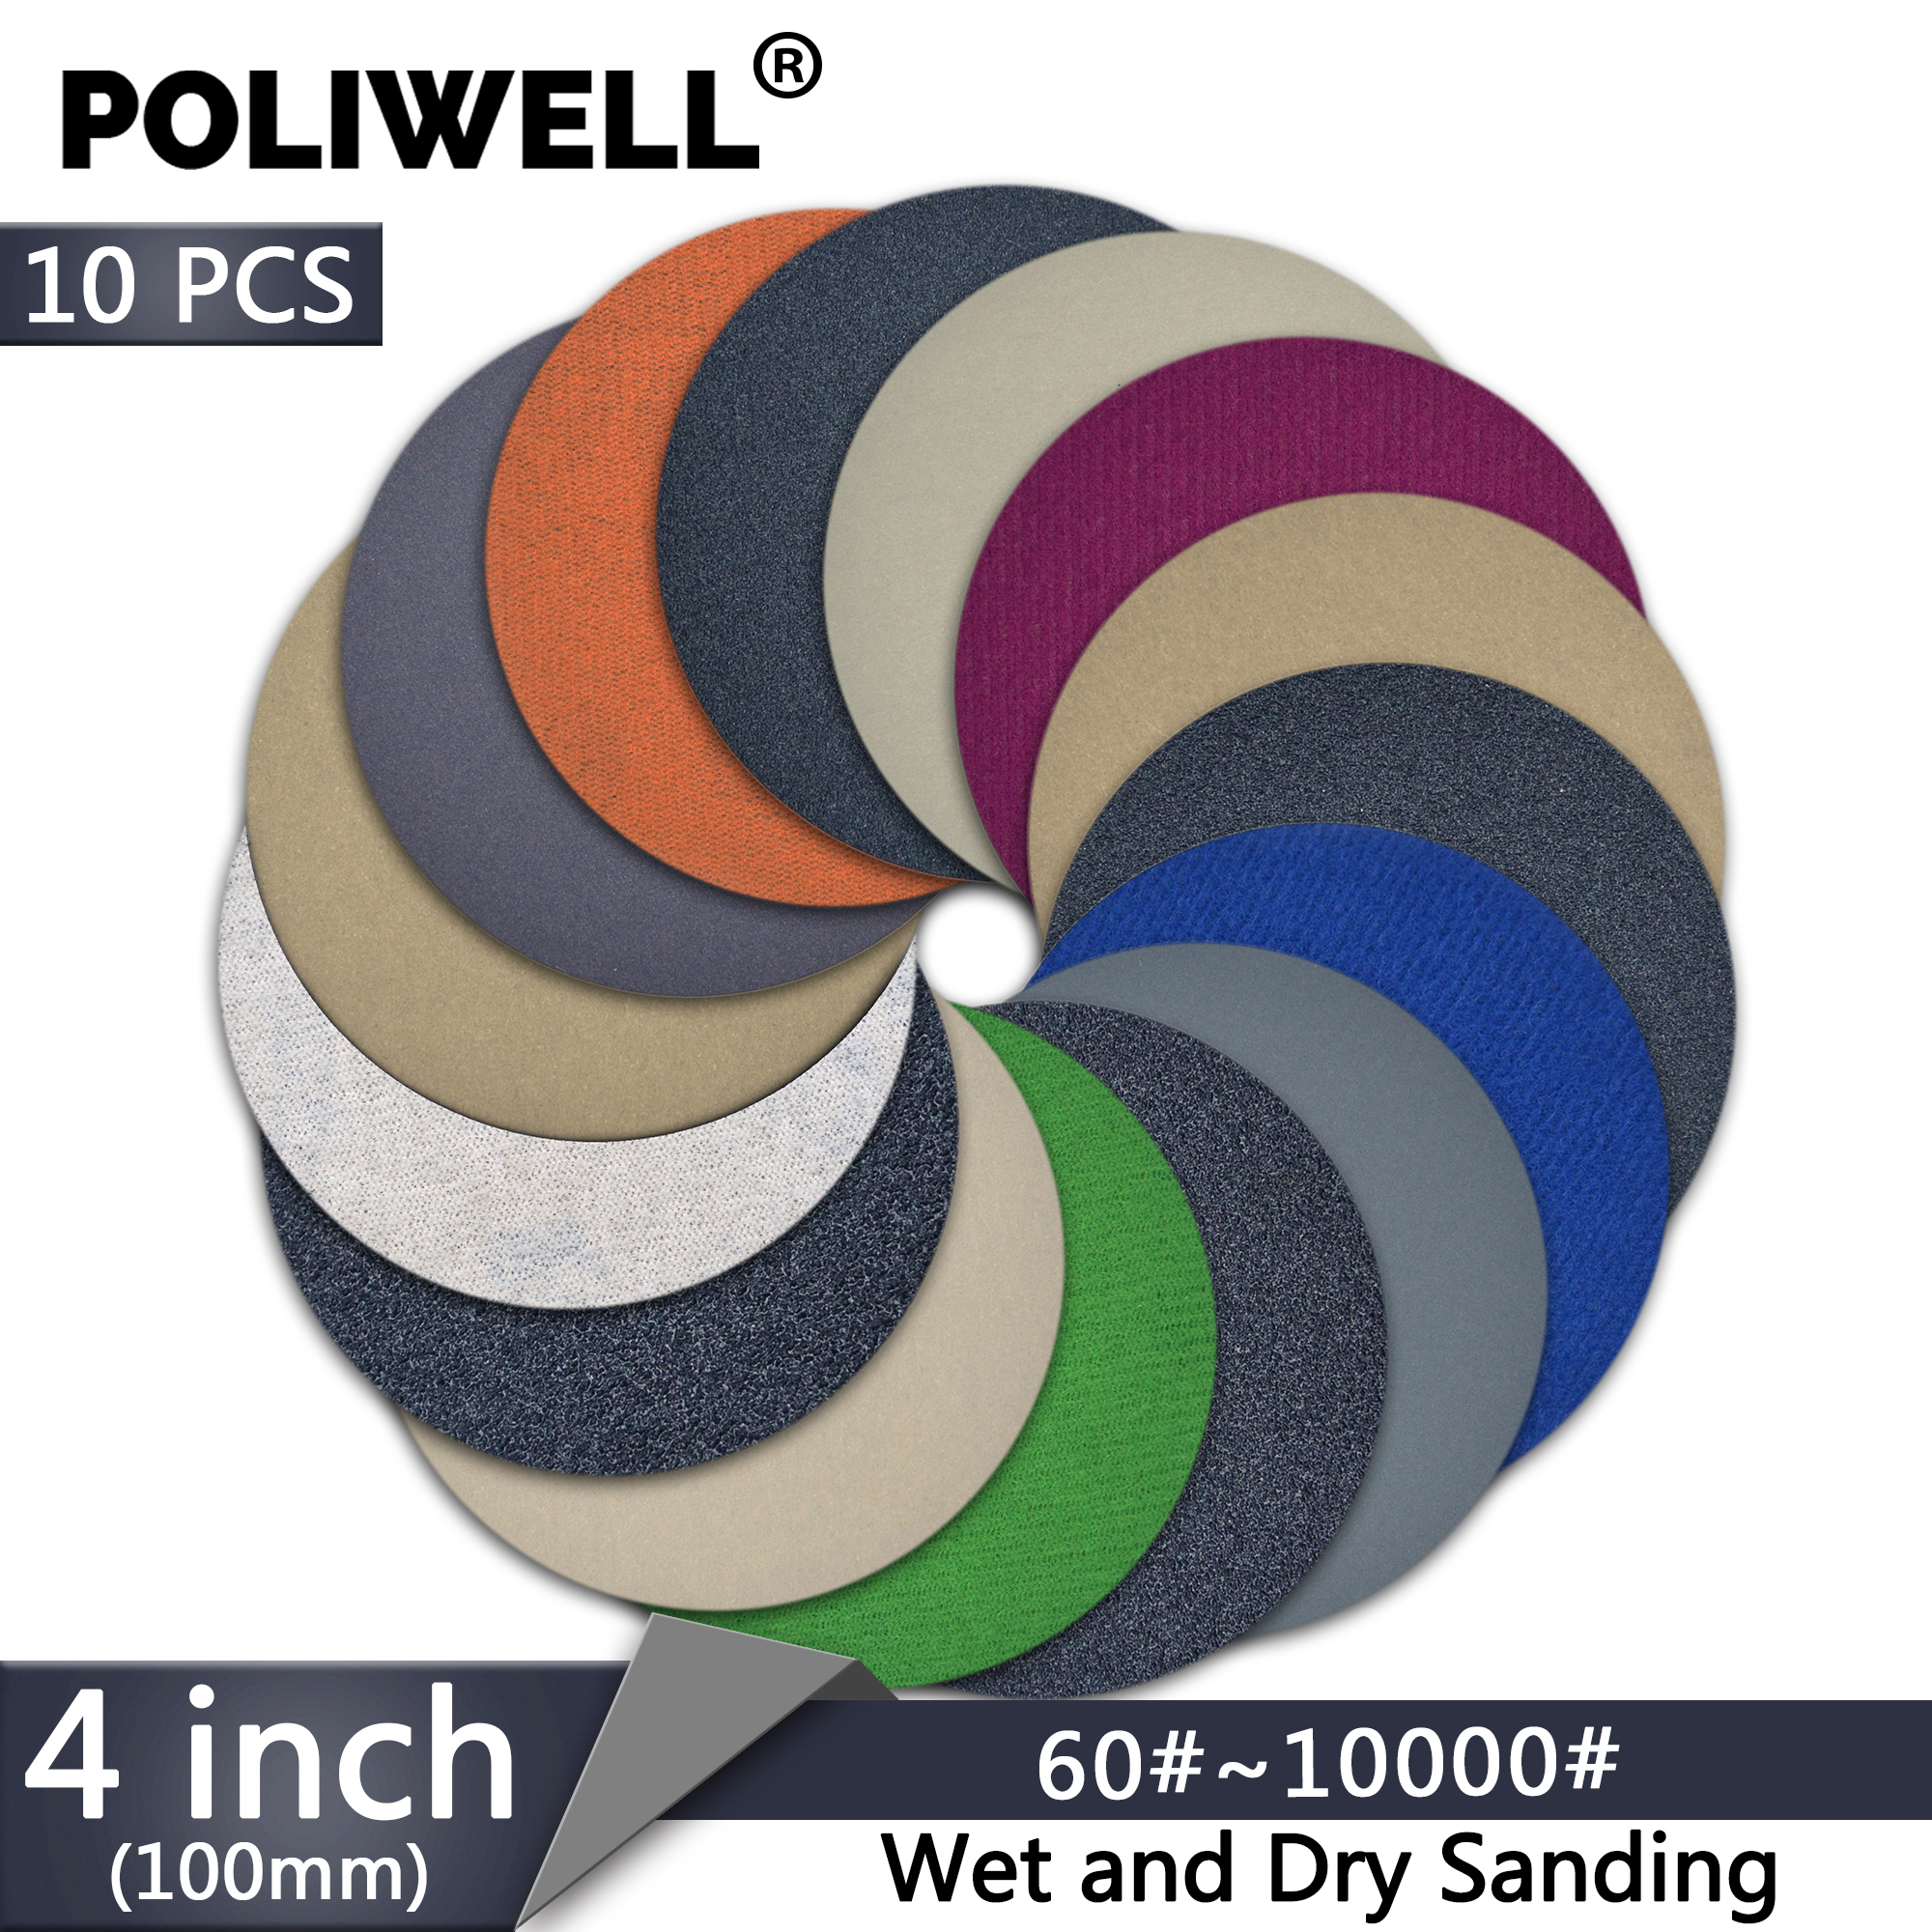 POLIWELL 10PCS 4 Inch Grit 800 1000 2000 Waterproof Sanding Discs Silicon Carbide Round Sanding Paper Sandpaper For Car Grinding